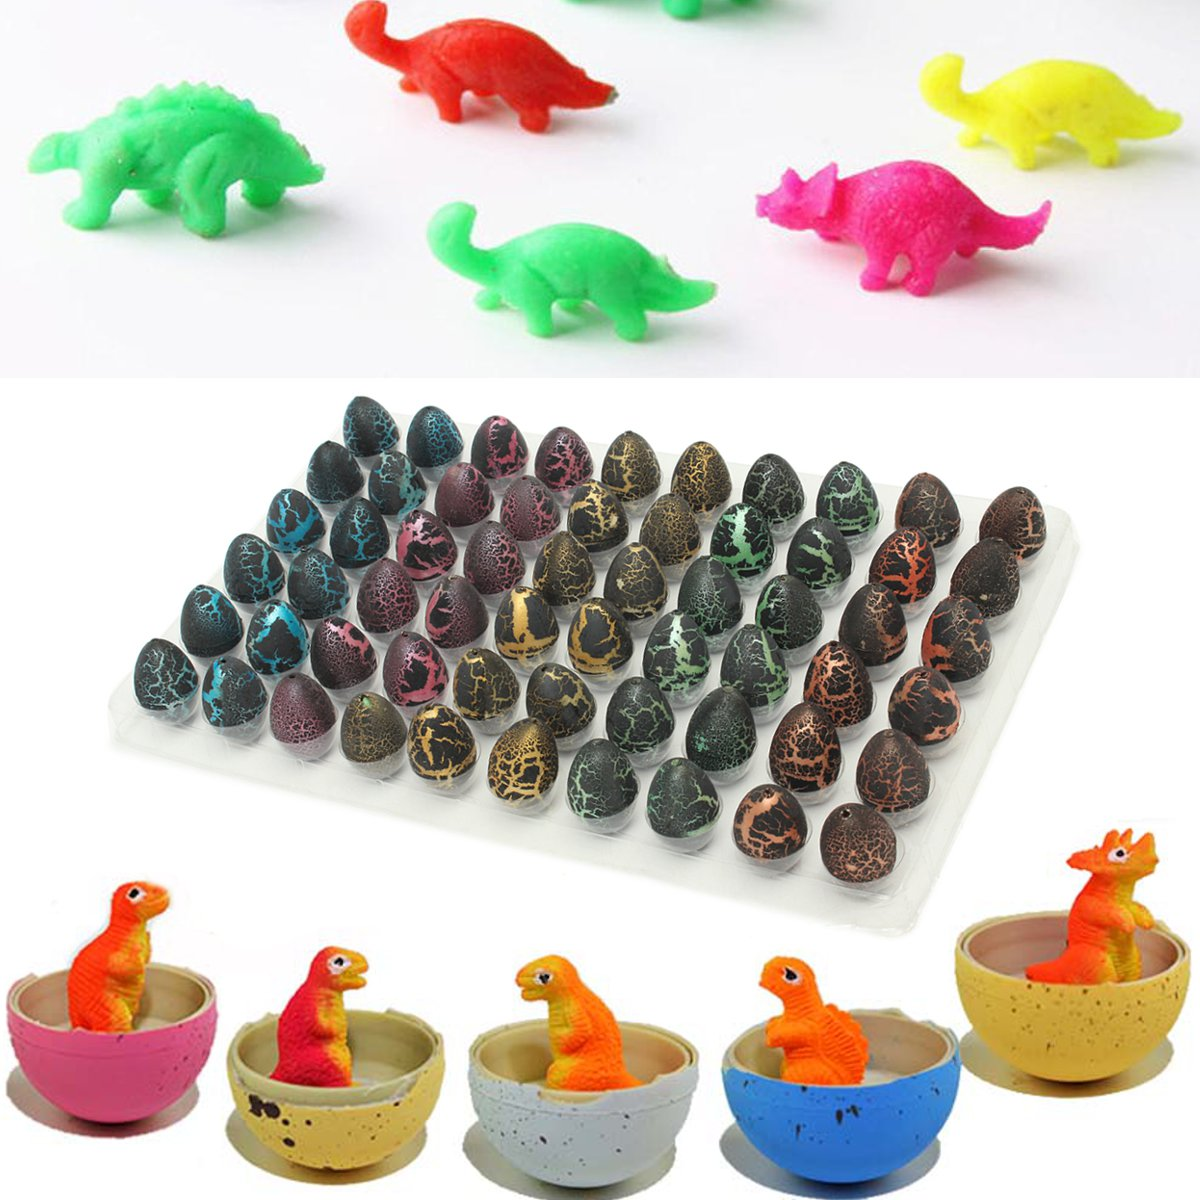 60 Pcs Black Magic Add Water Dinosaur Egg Hatching Dino Growing Toy Gifts